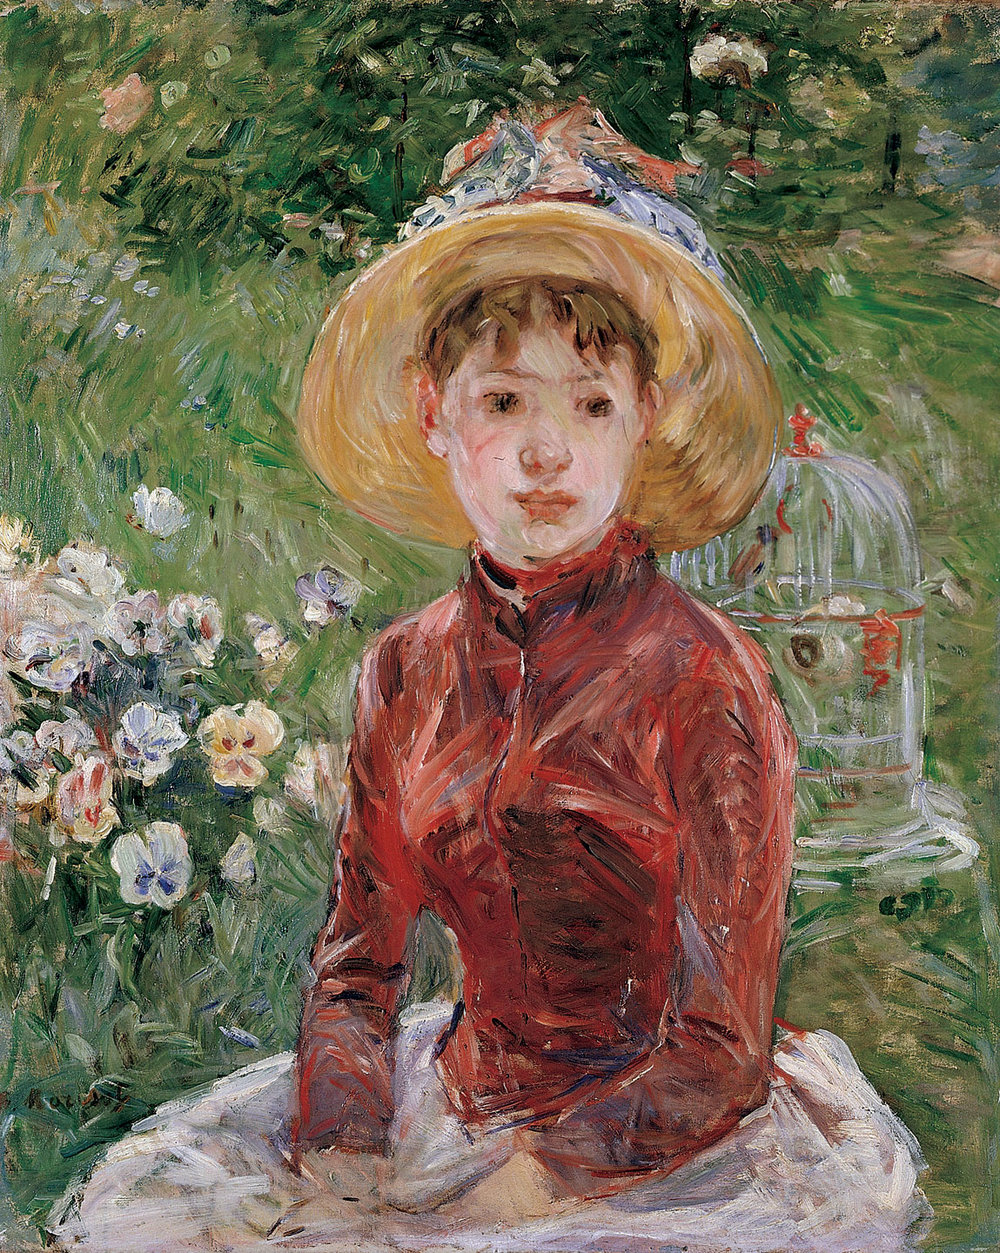 YOUNG GIRL ON THE GRASS by Berthe Morisot, oil canvas, 74 x 60 centimeters, 1885. Courtesy of Ordrupgaard Museum.